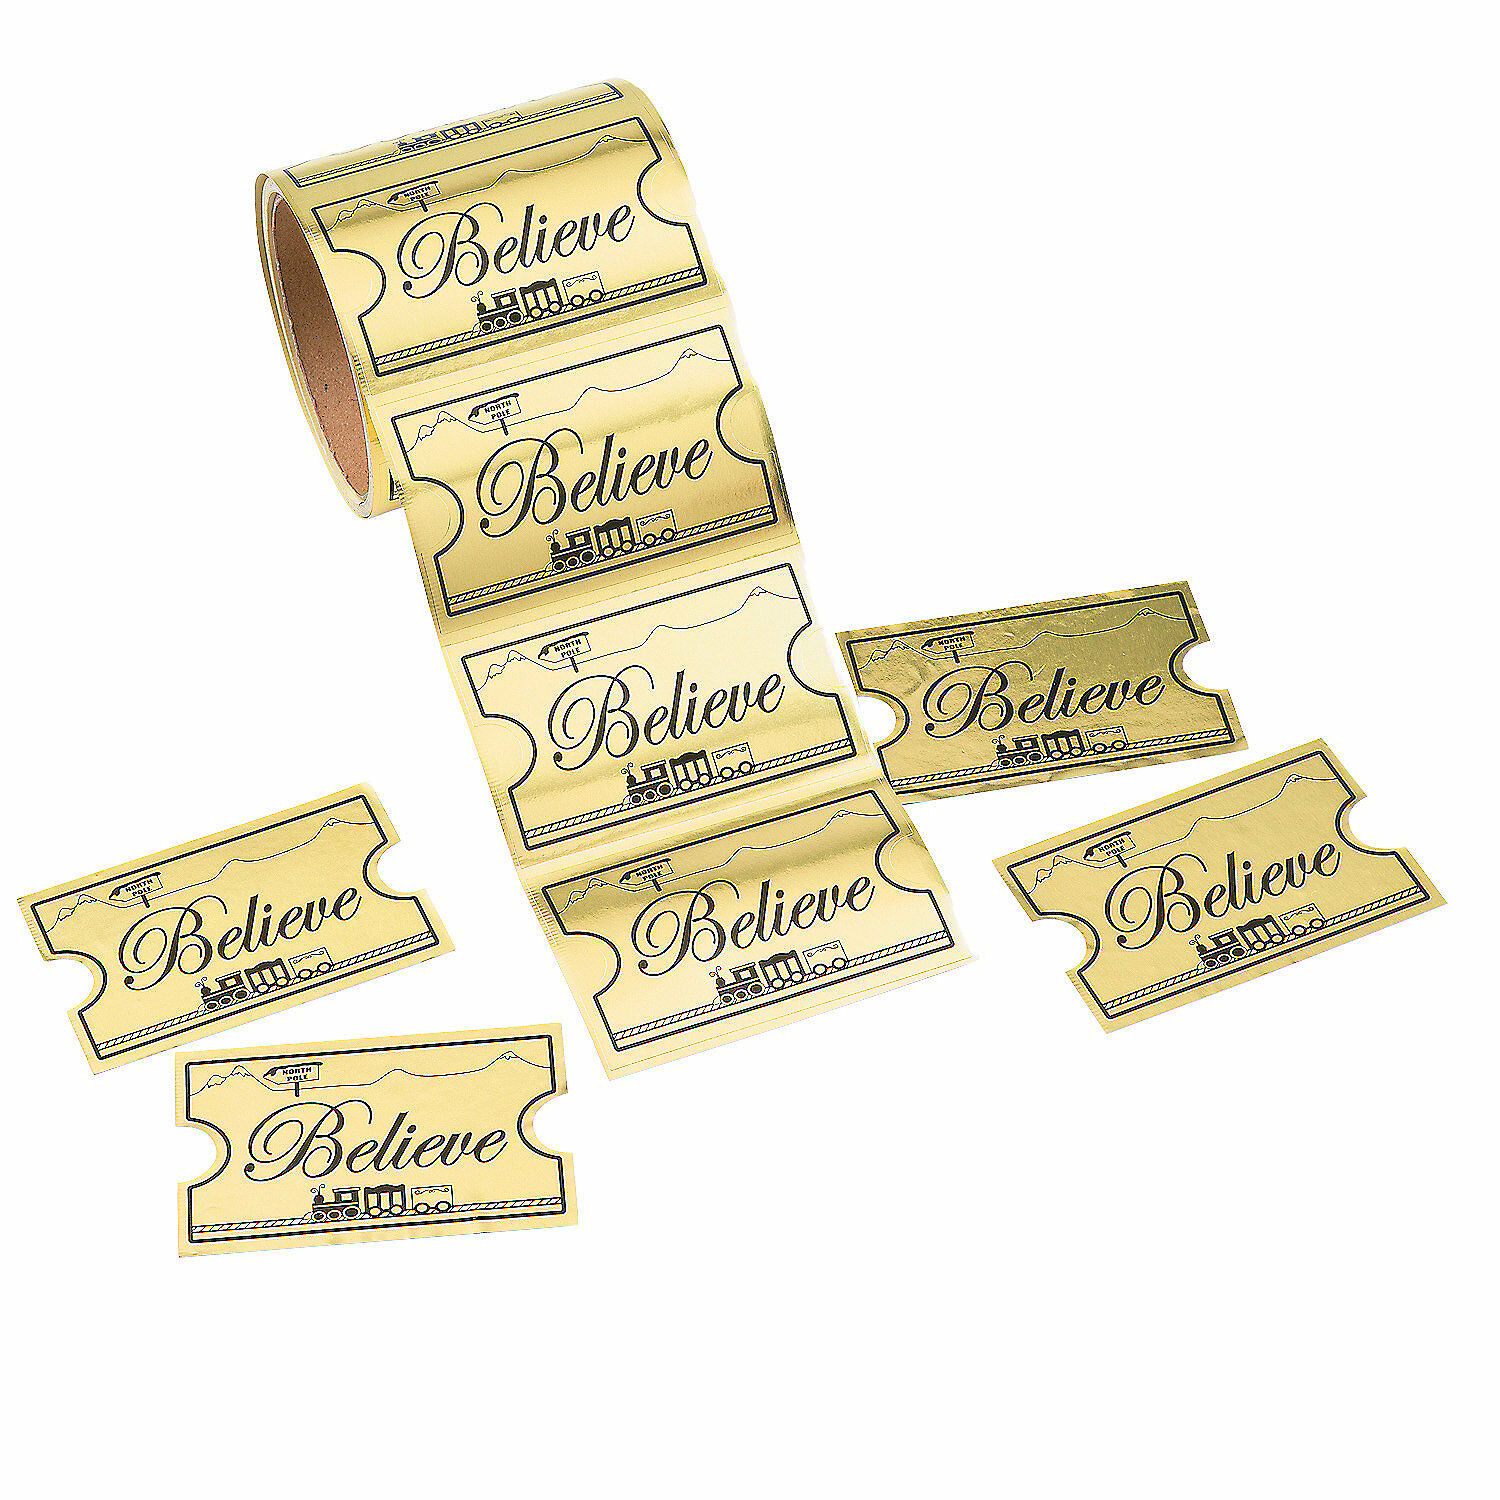 1 Roll CHRISTMAS Party Favors GOLDEN TICKET BELIEVE North Po